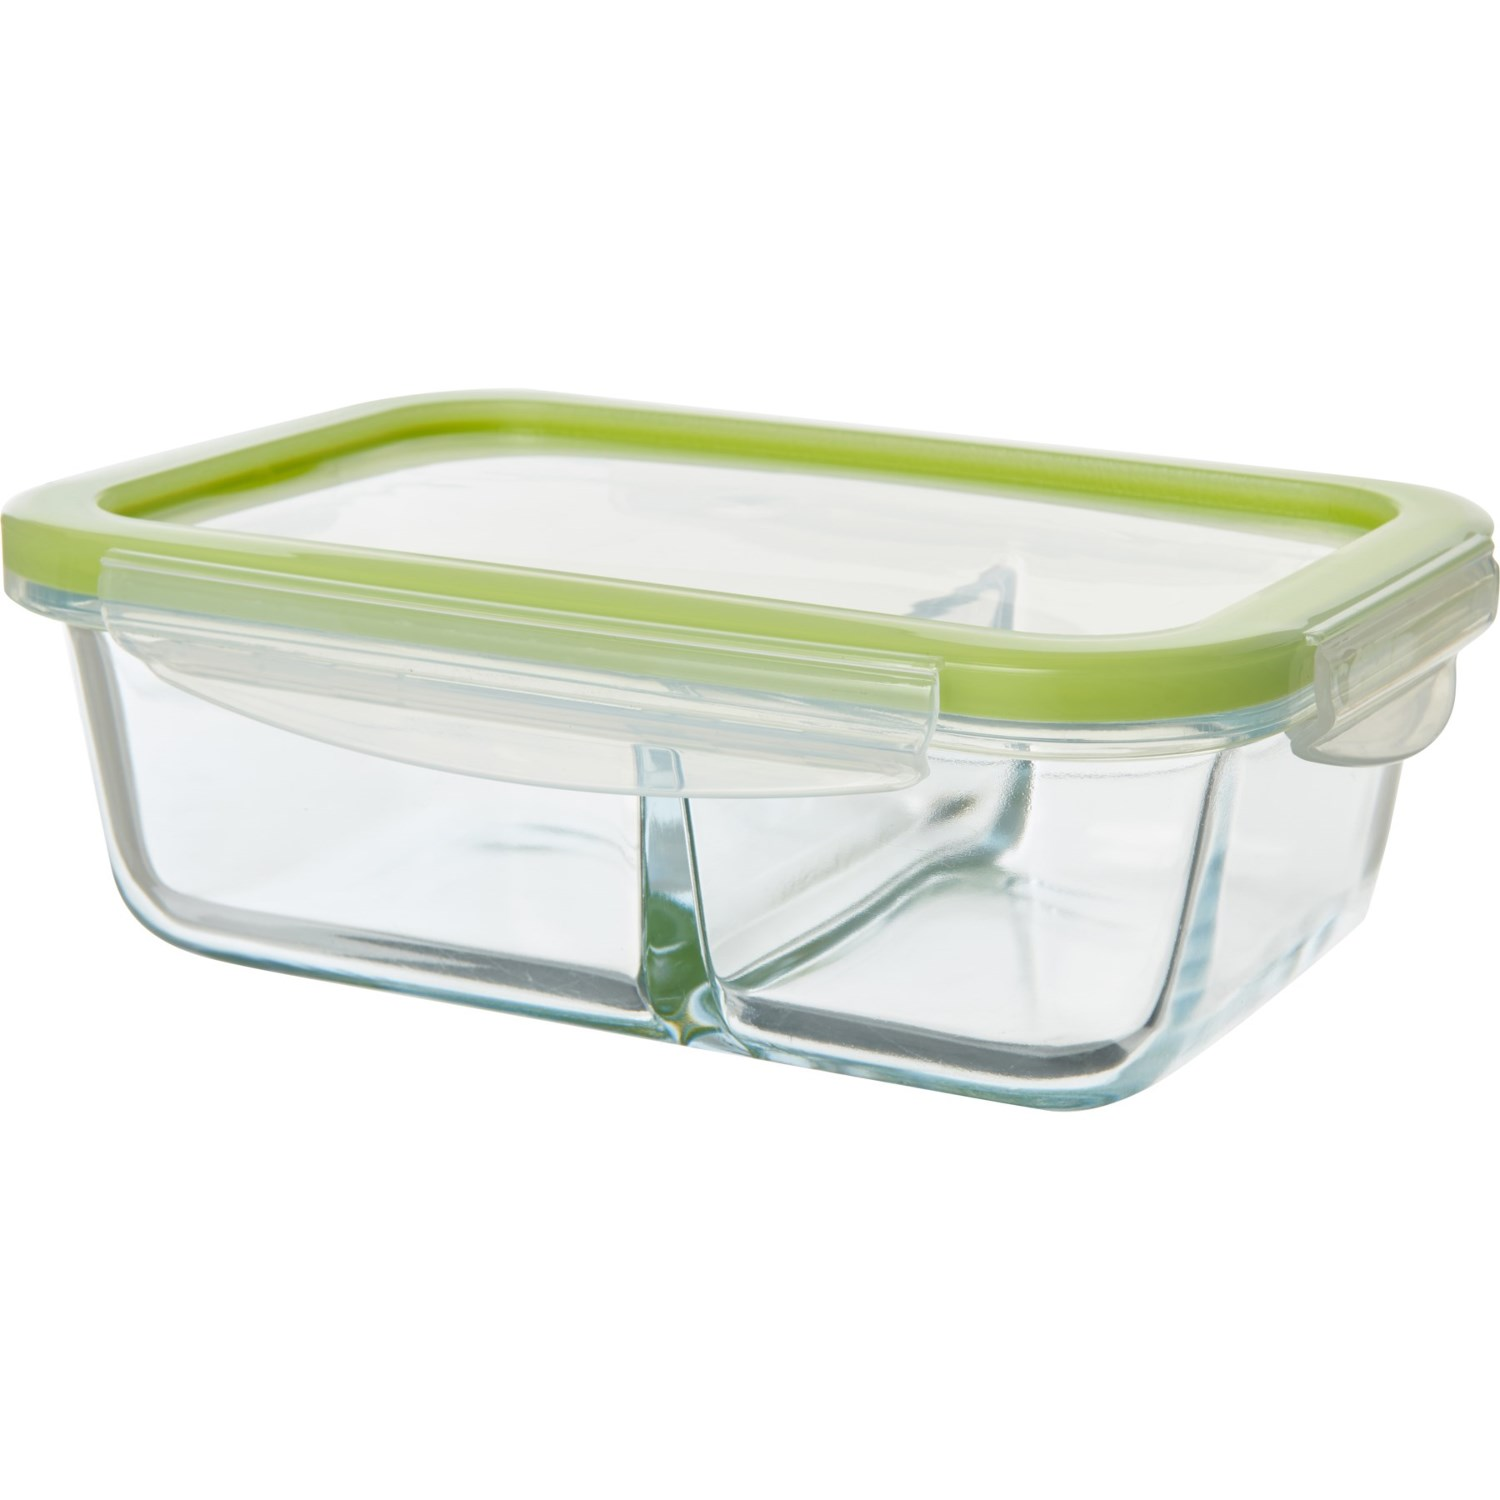 b0c797e03454 Kitchen Details Clip-Lock Rectangle Glass Food Storage Container ...